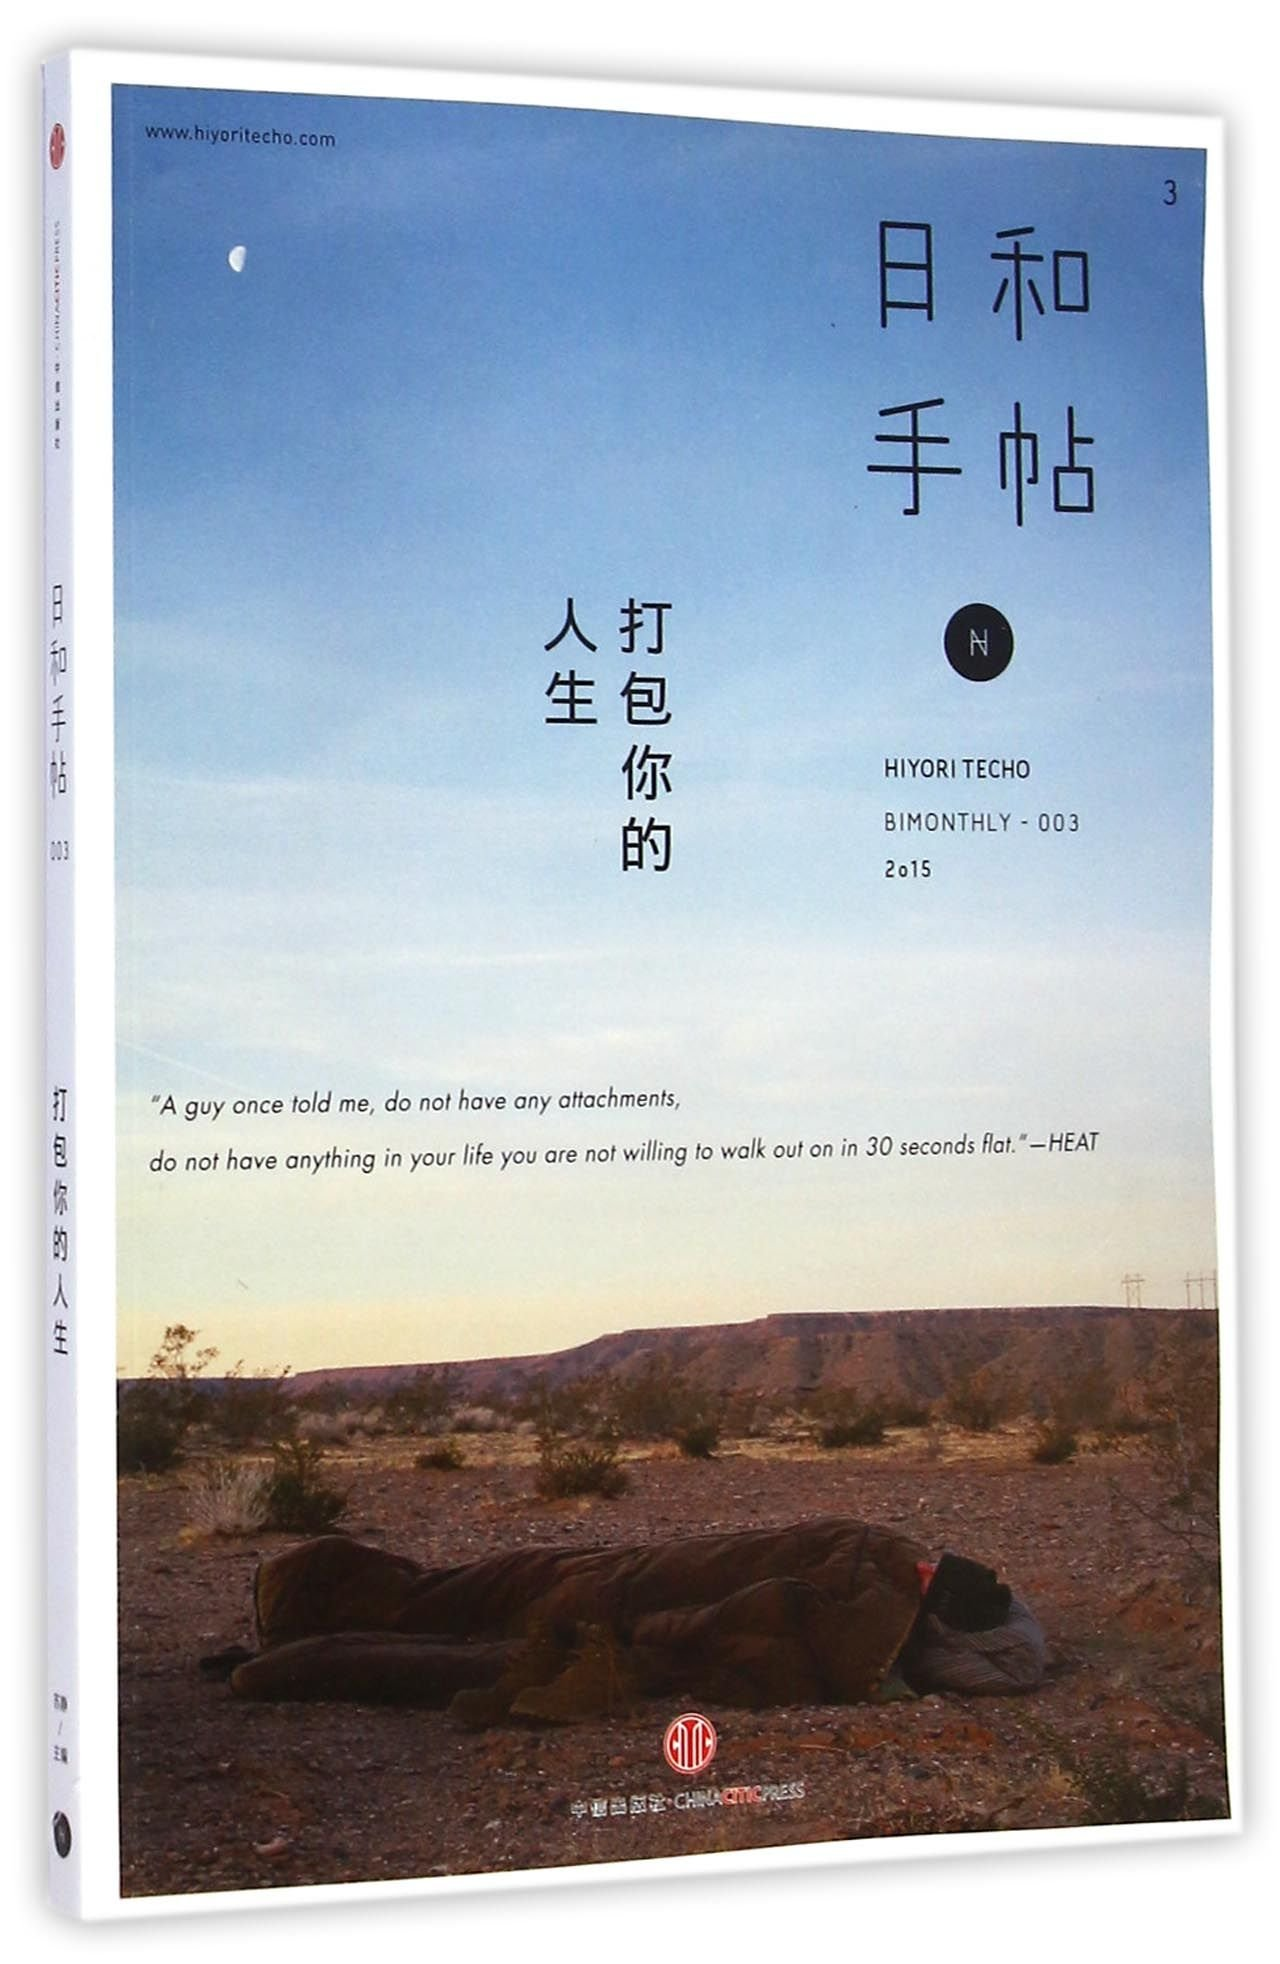 HiyoriTecho: Pack Up Your Life (Chinese Edition) ebook